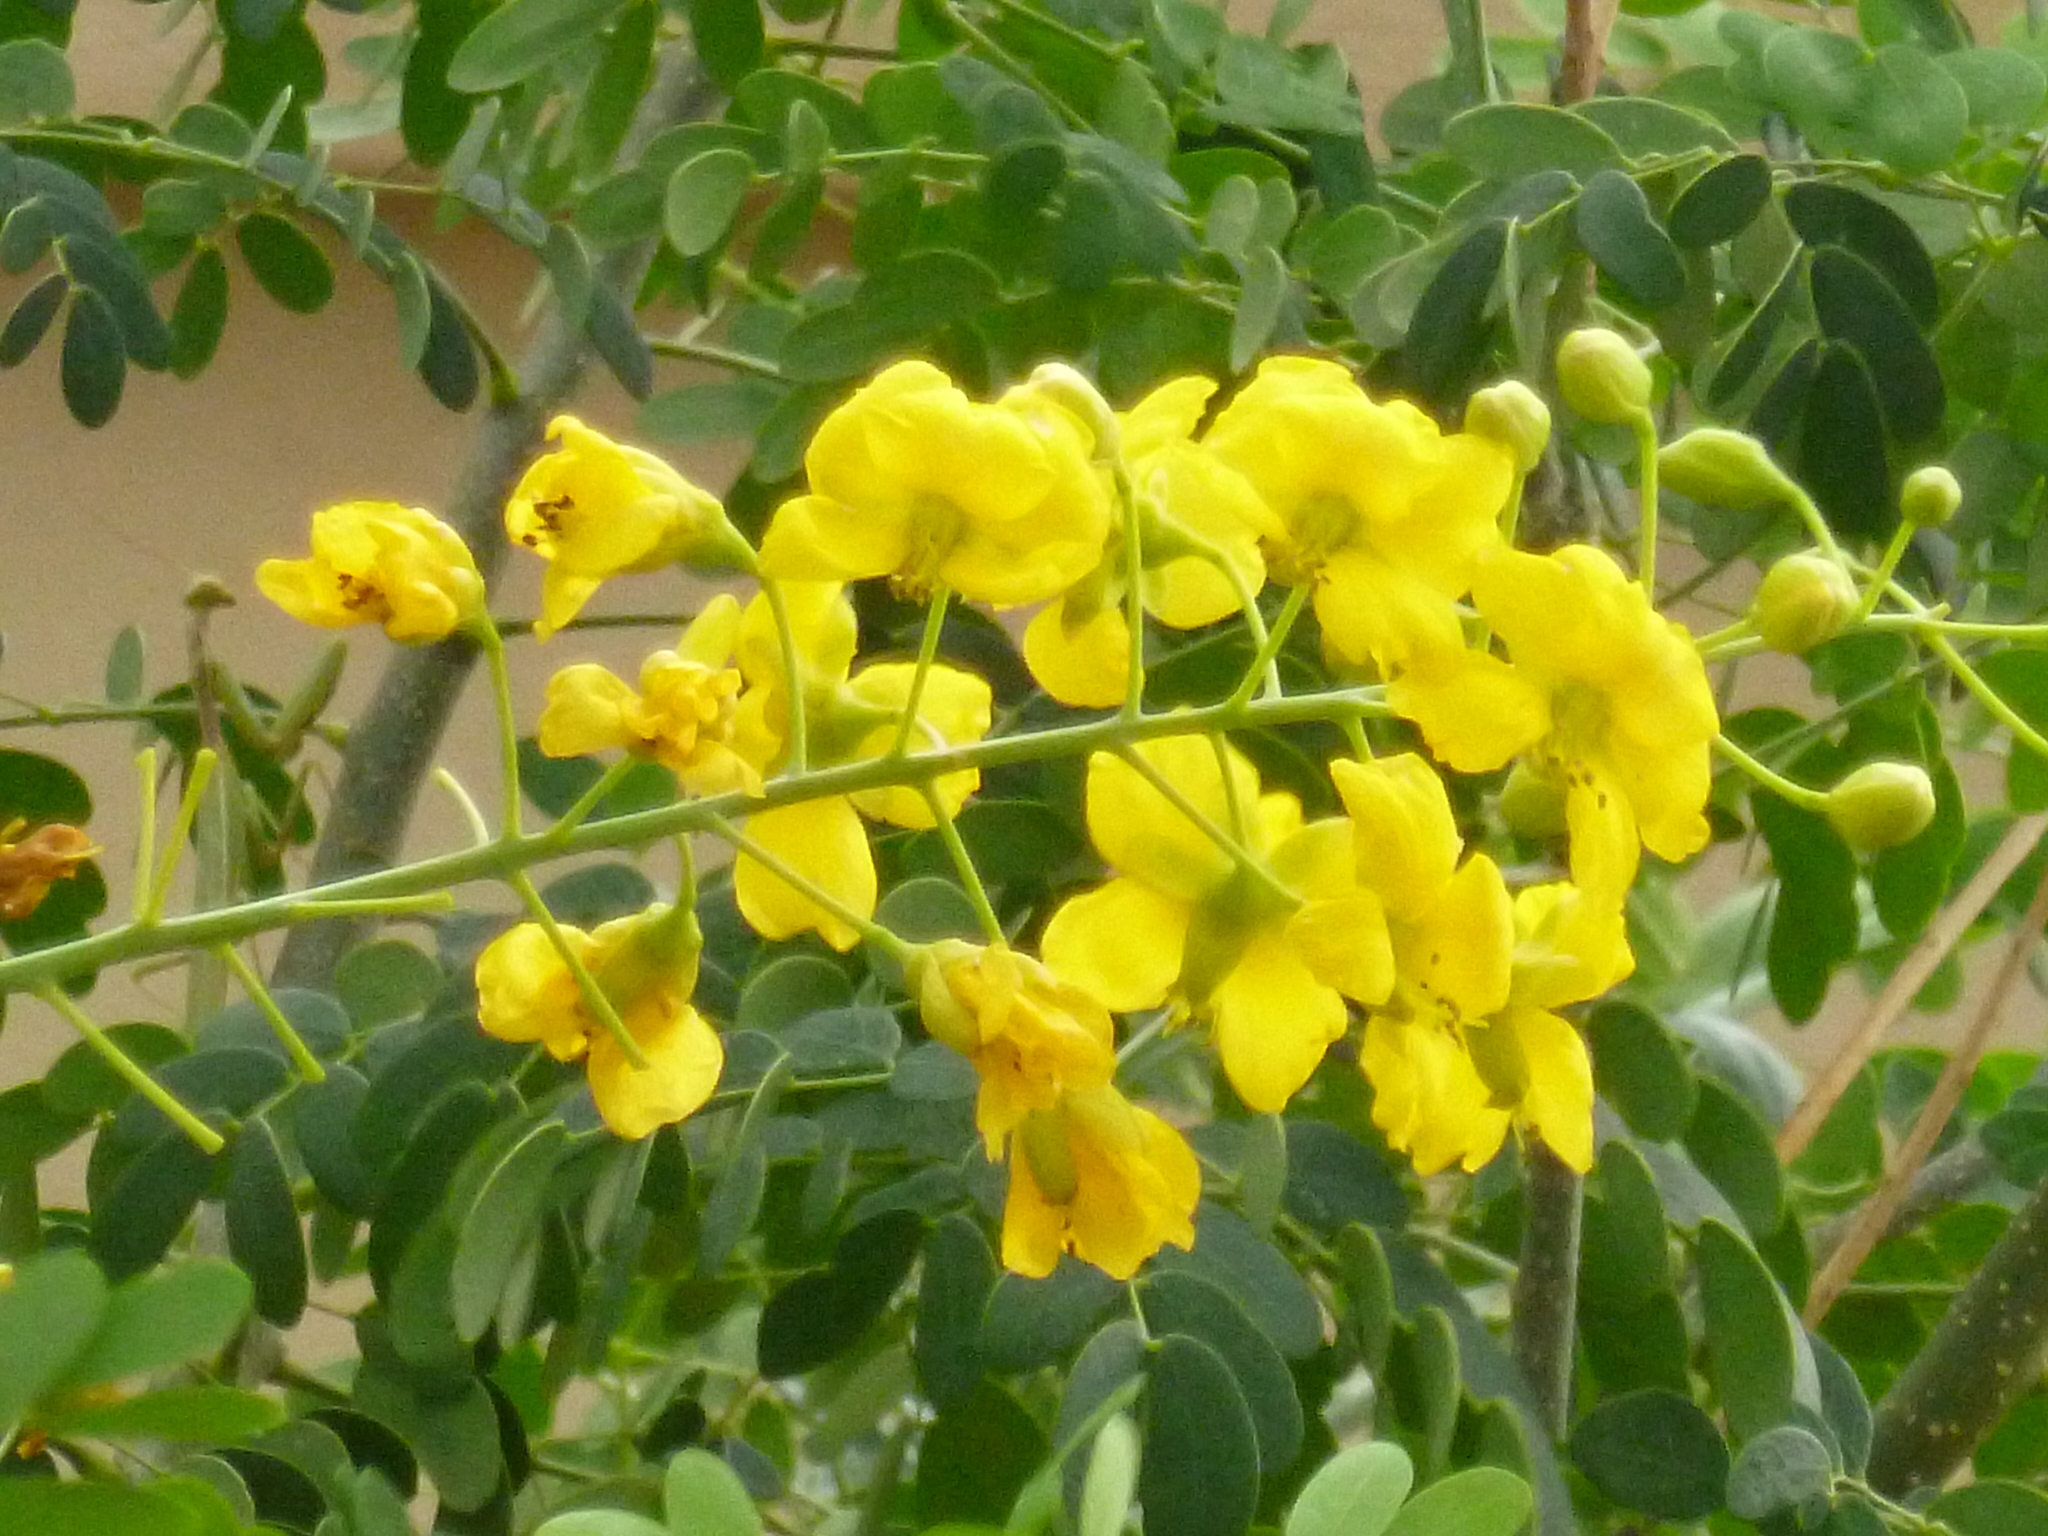 Shrub with yellow flowers tjs garden arizona bush yellow flowers shrub mightylinksfo Image collections